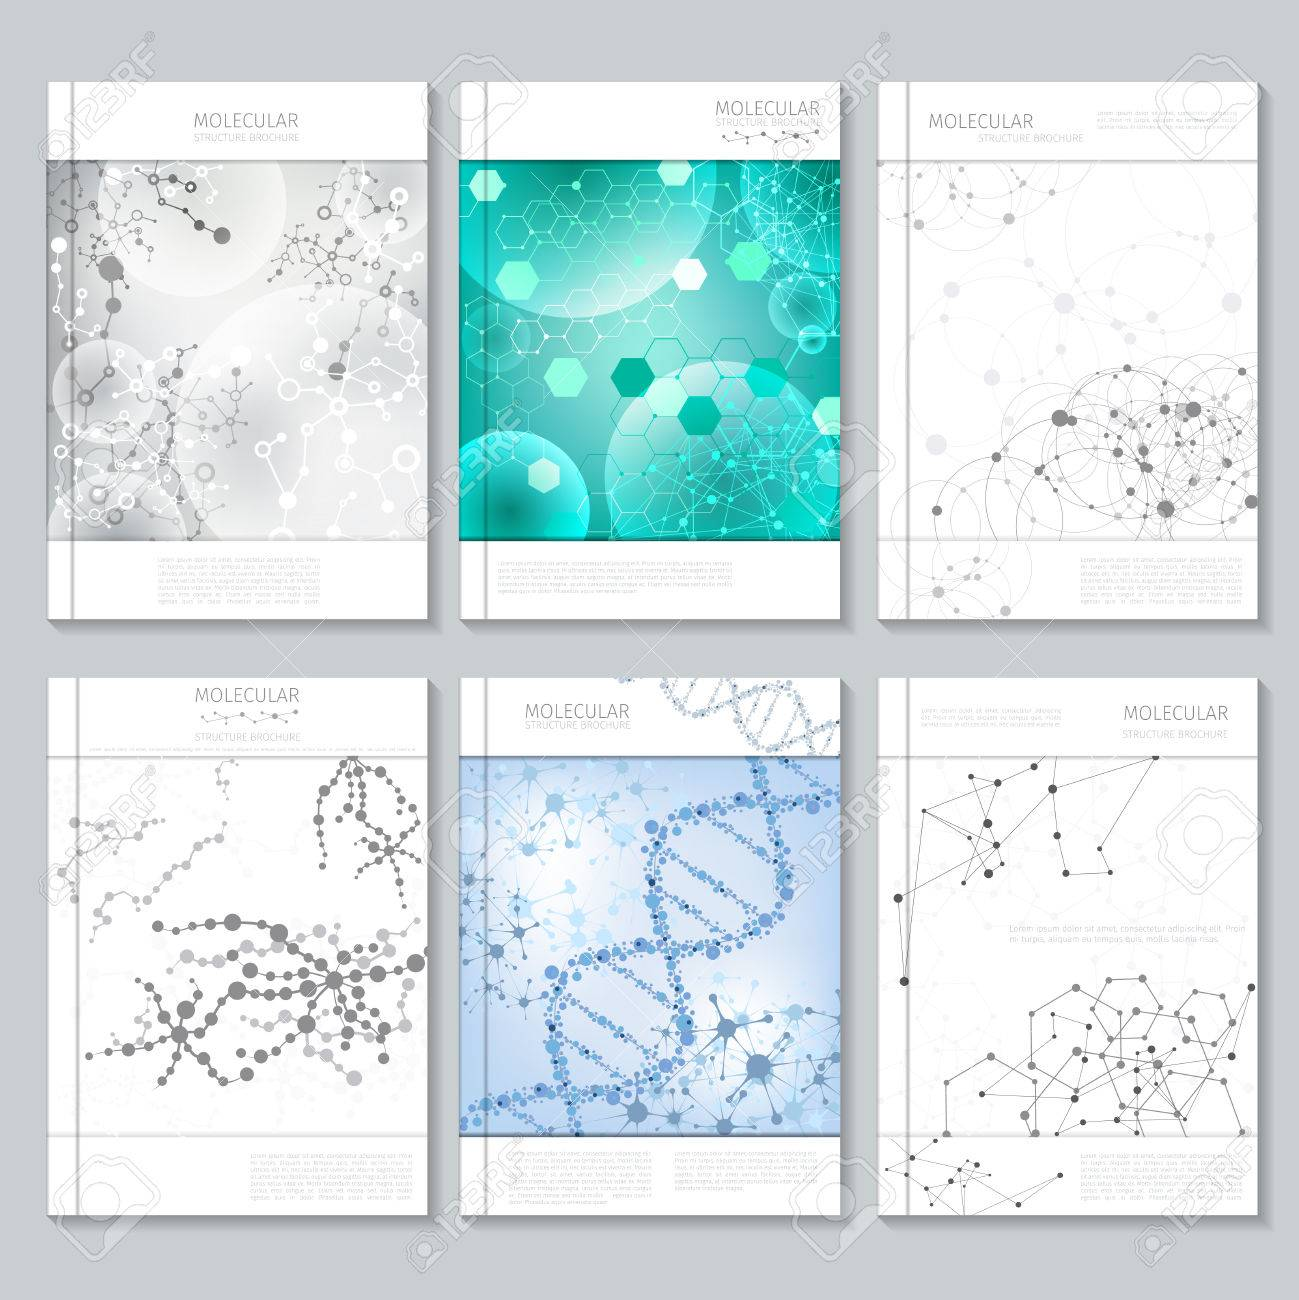 molecular structure brochure or report templates for business molecular structure brochure or report templates for business poster or booklet presentation and publication